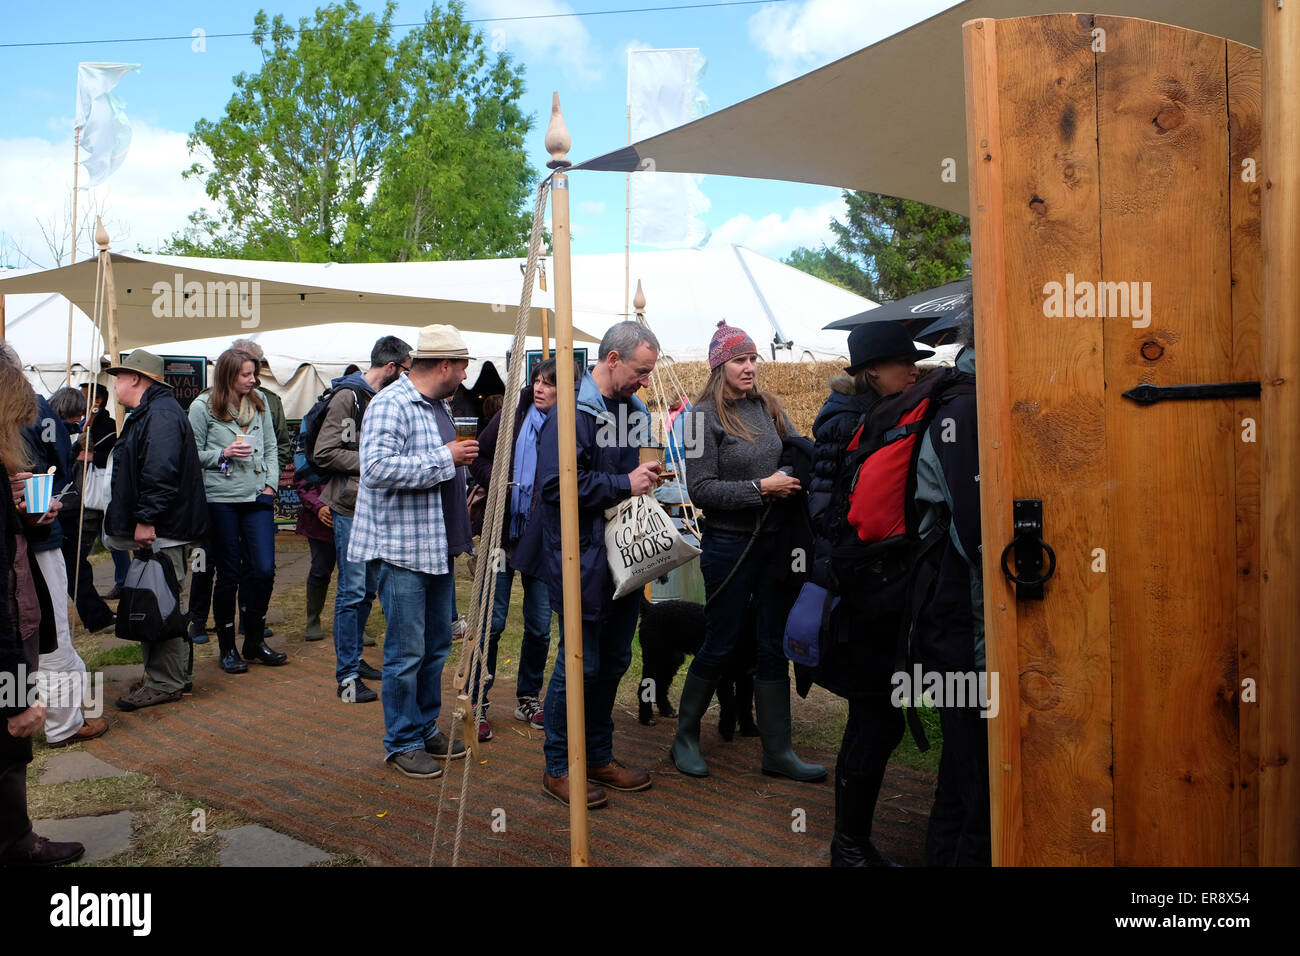 Hay on Wye, Powys, Wales. 29th May, 2015. How The Light Gets In festival embraces philosophy and music - Festival - Stock Image